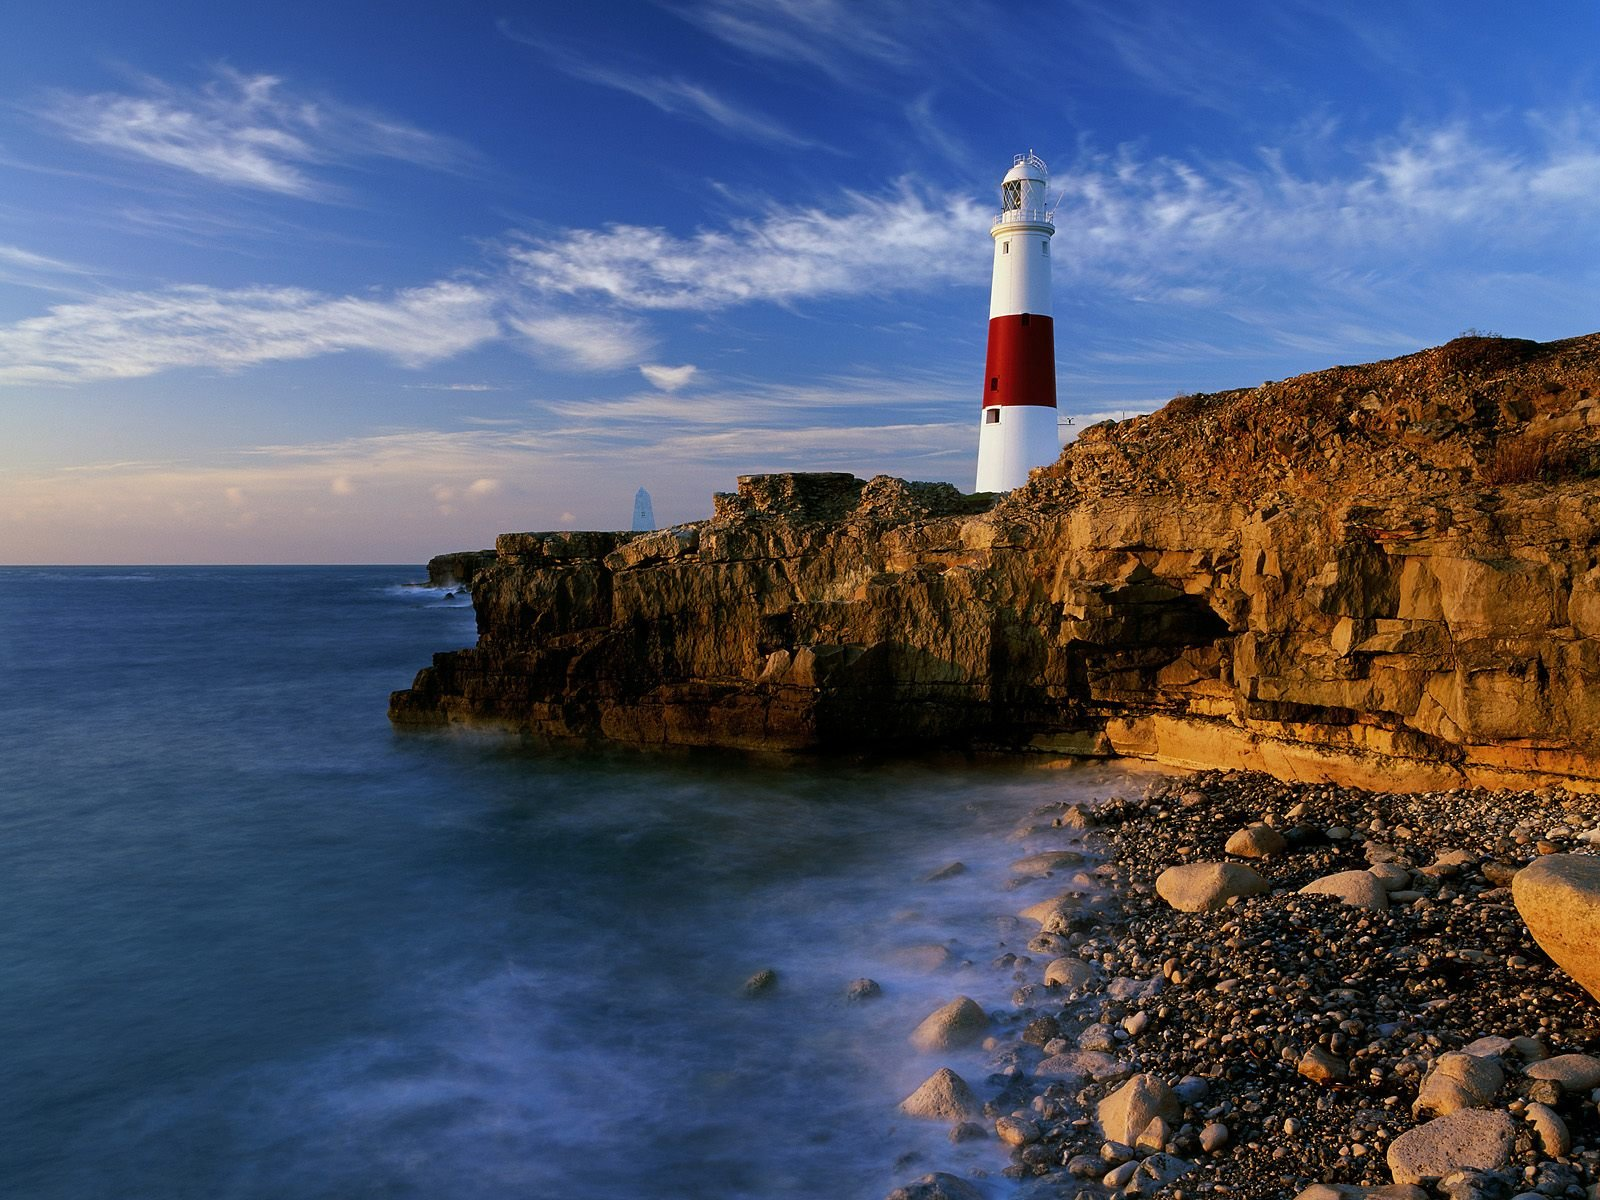 Lighthouse England Wallpapers HD Wallpapers 1600x1200